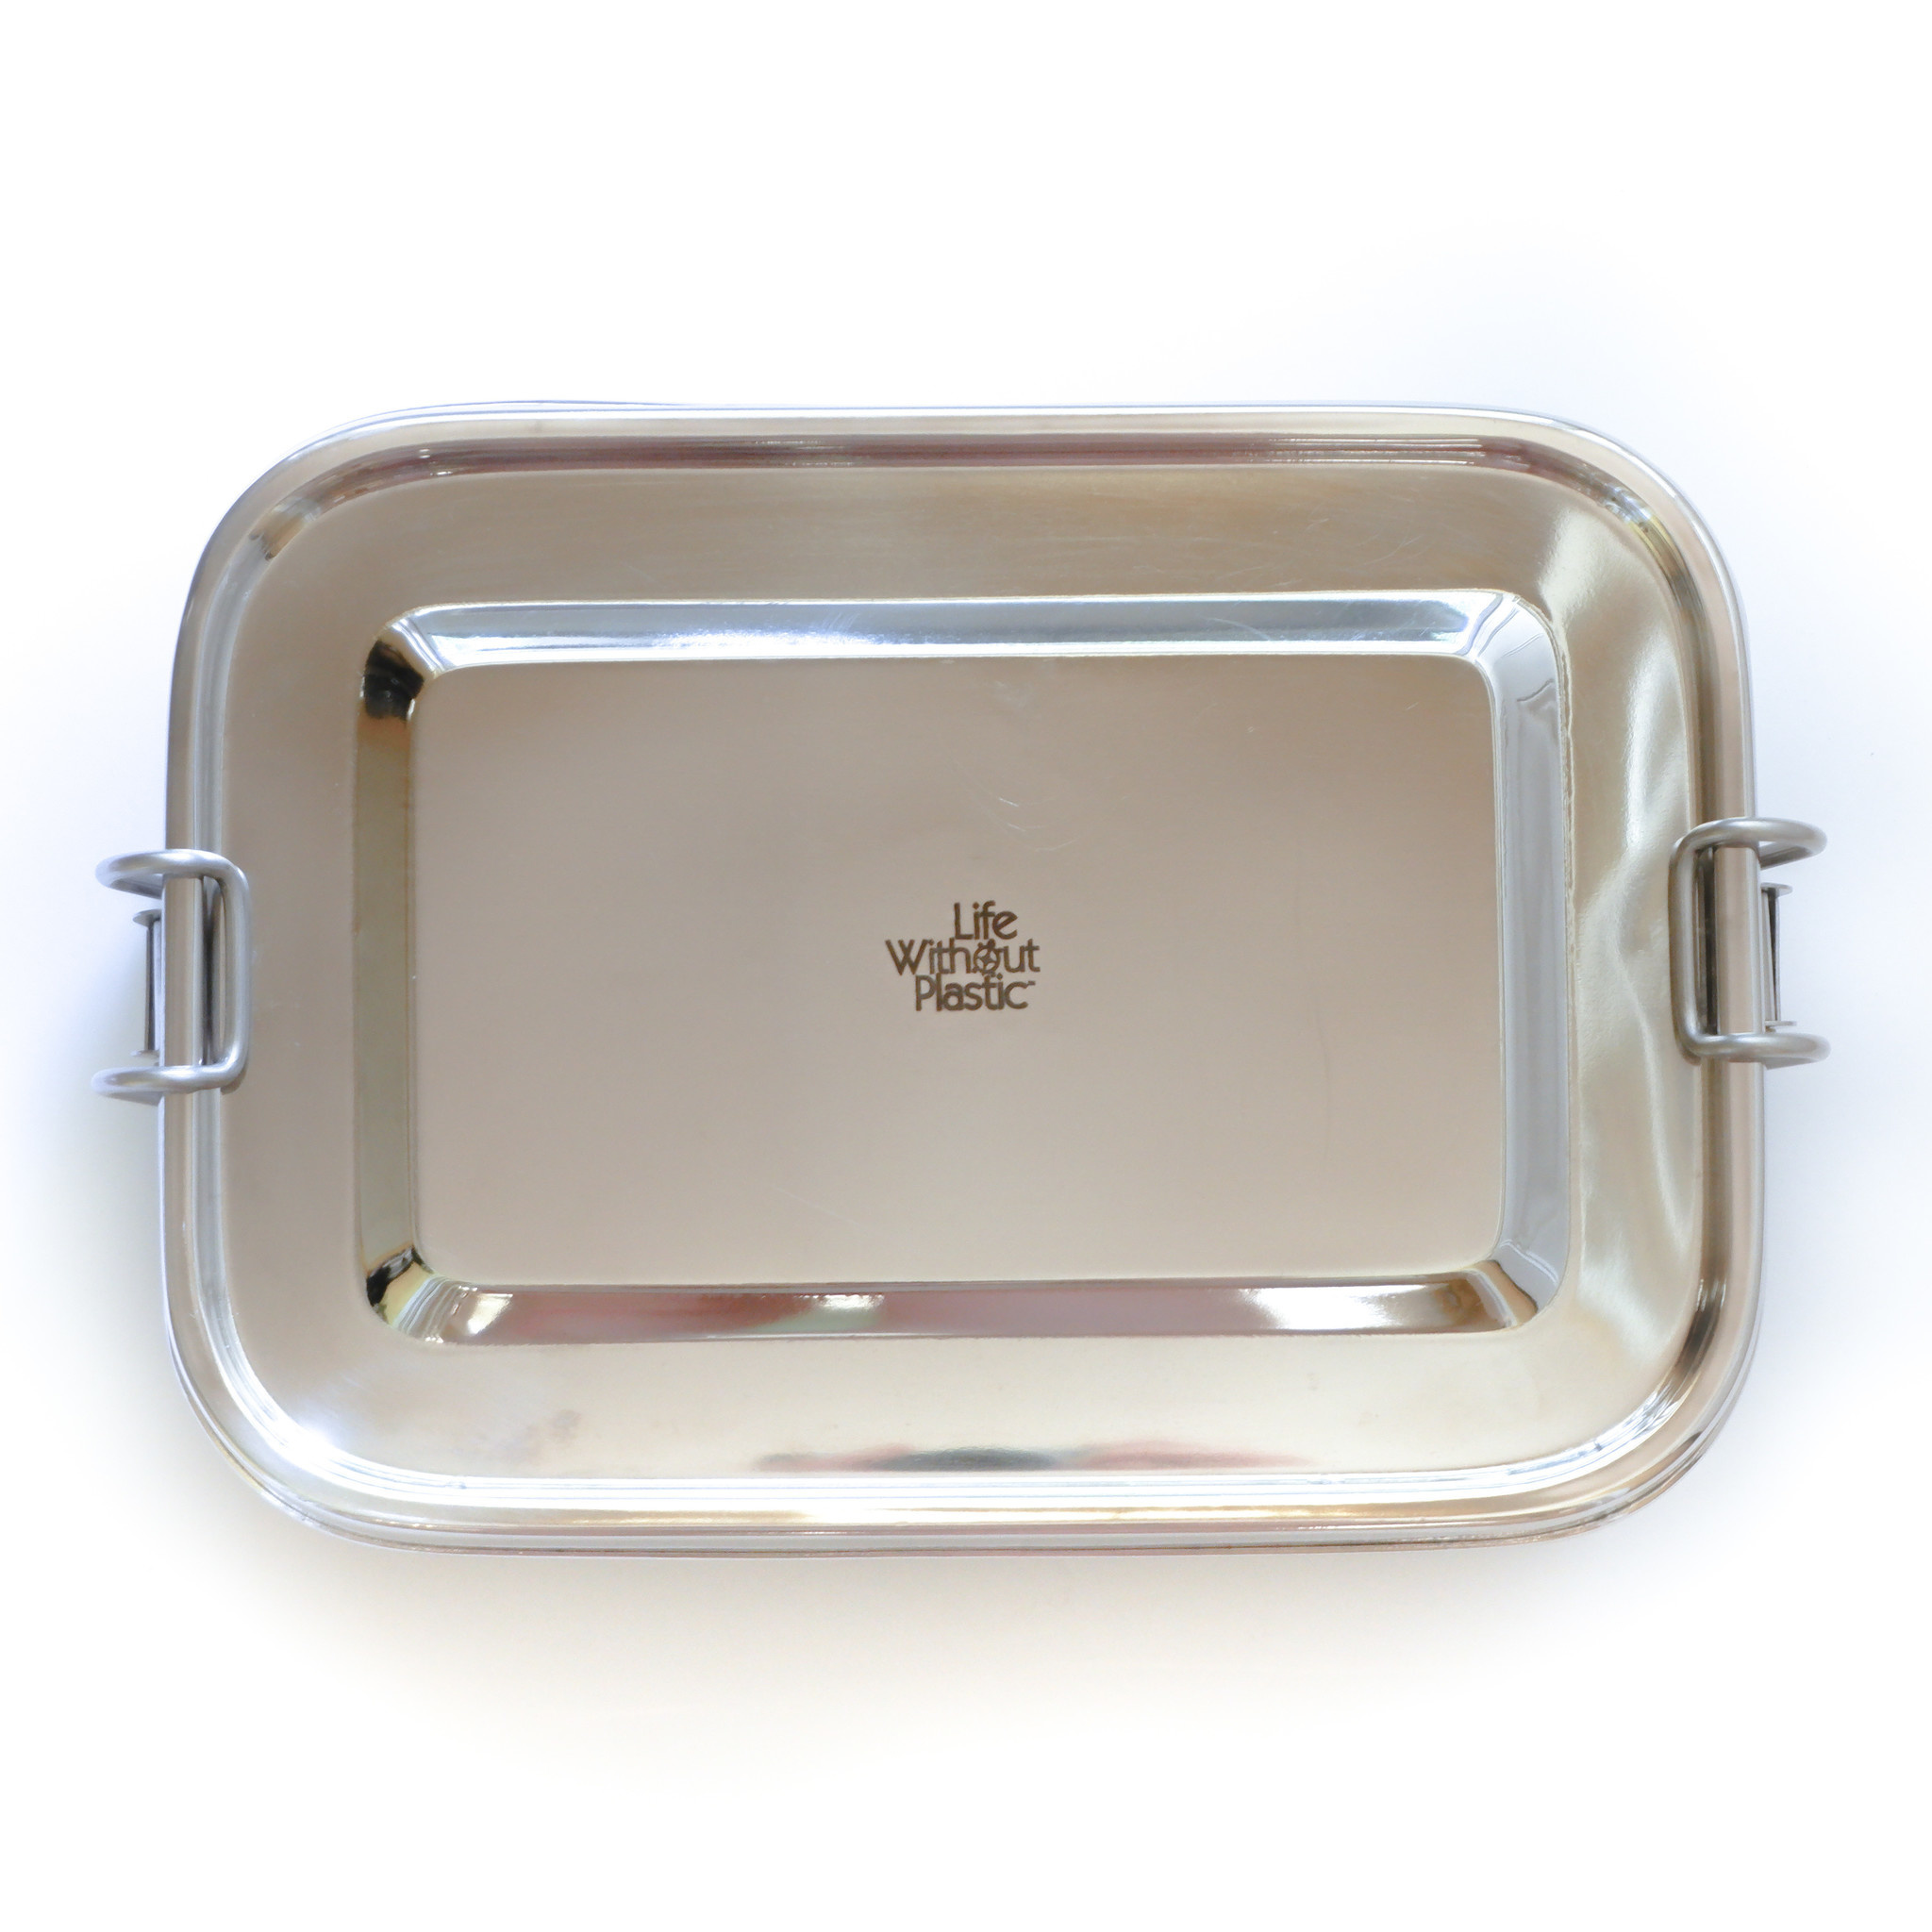 Stainless Steel Rectangular Airtight Food Storage Container - 1.6 L